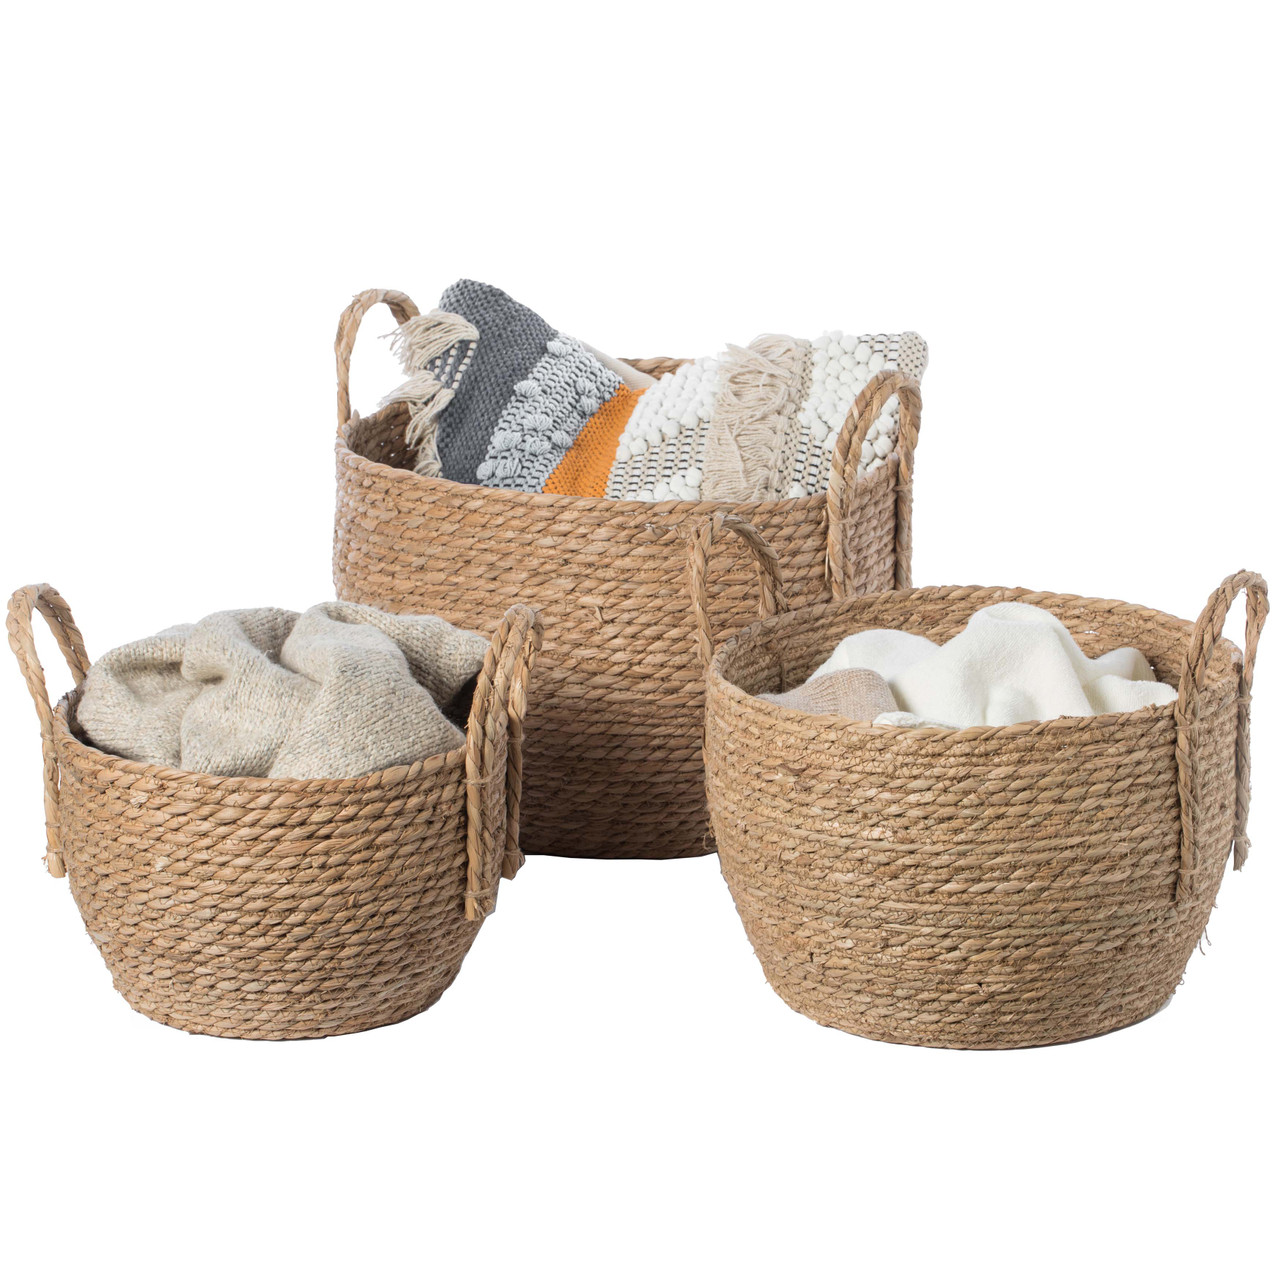 Decorative Round Wicker Woven Rope Storage Blanket Basket With Braided Handles Quickway Imports Inc